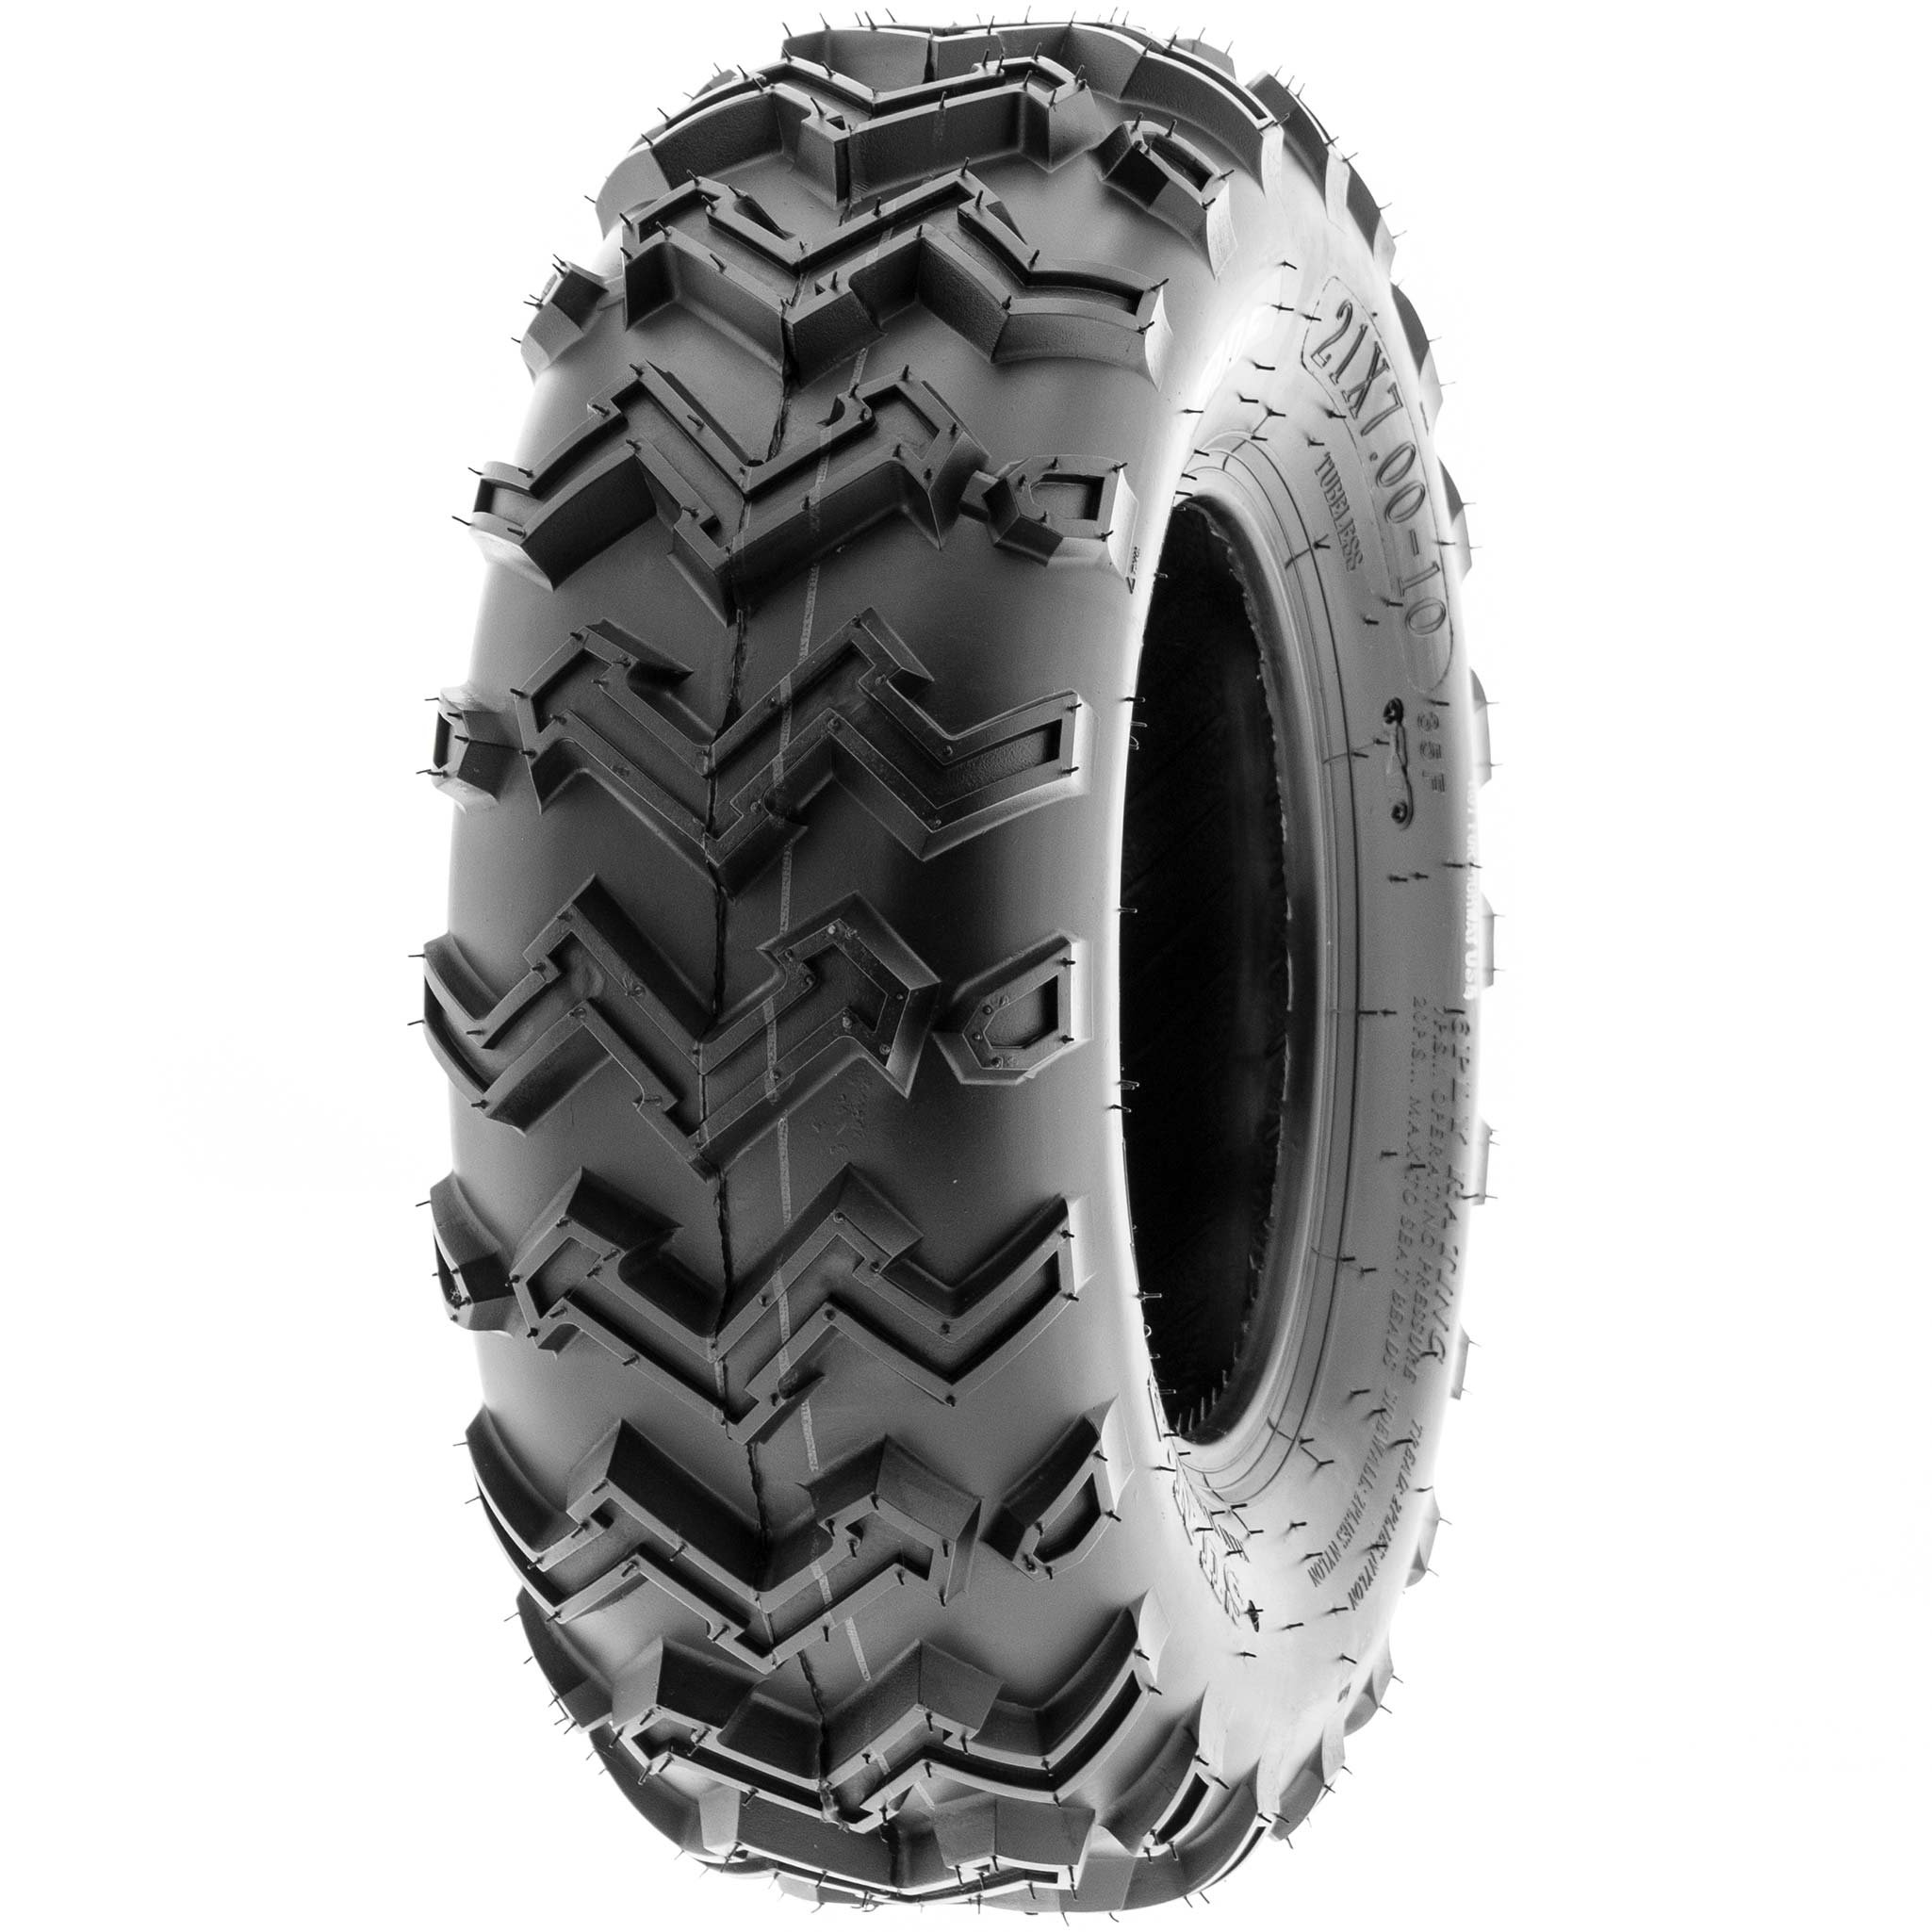 SunF 21x7-10 21x7x10 ATV UTV All Terrain Race Replacement 6 PR Tubeless Tires A001, [Set of 2] by SunF (Image #8)